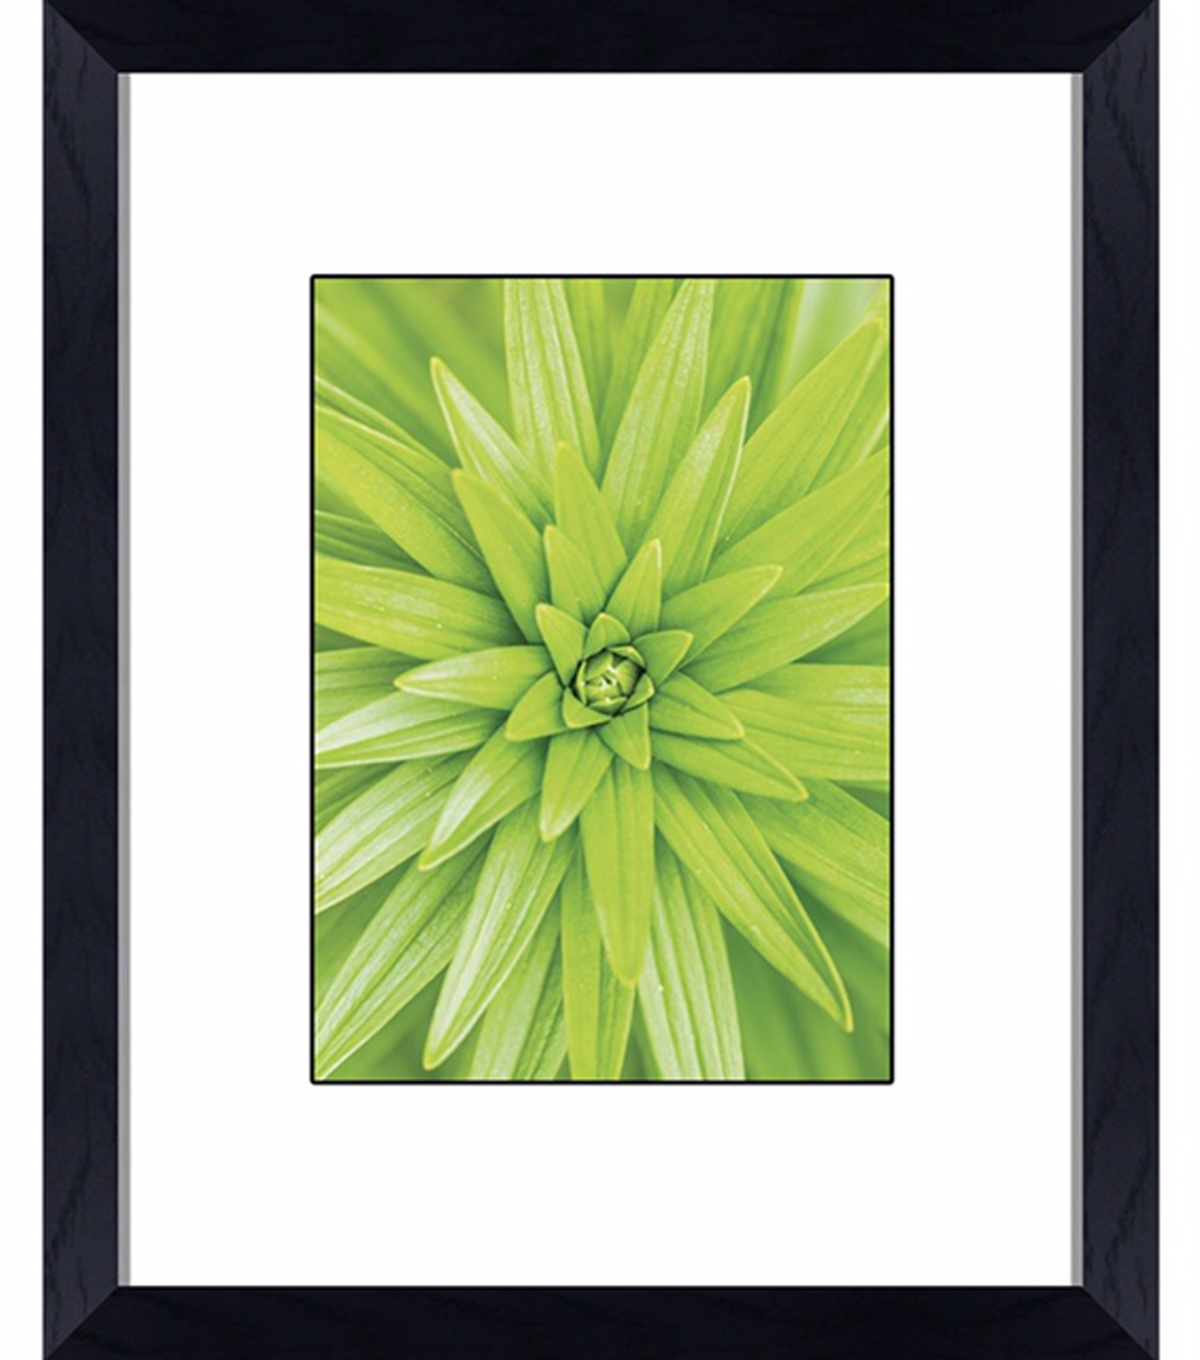 Wall Frame 8x10 Regal Frame-Black